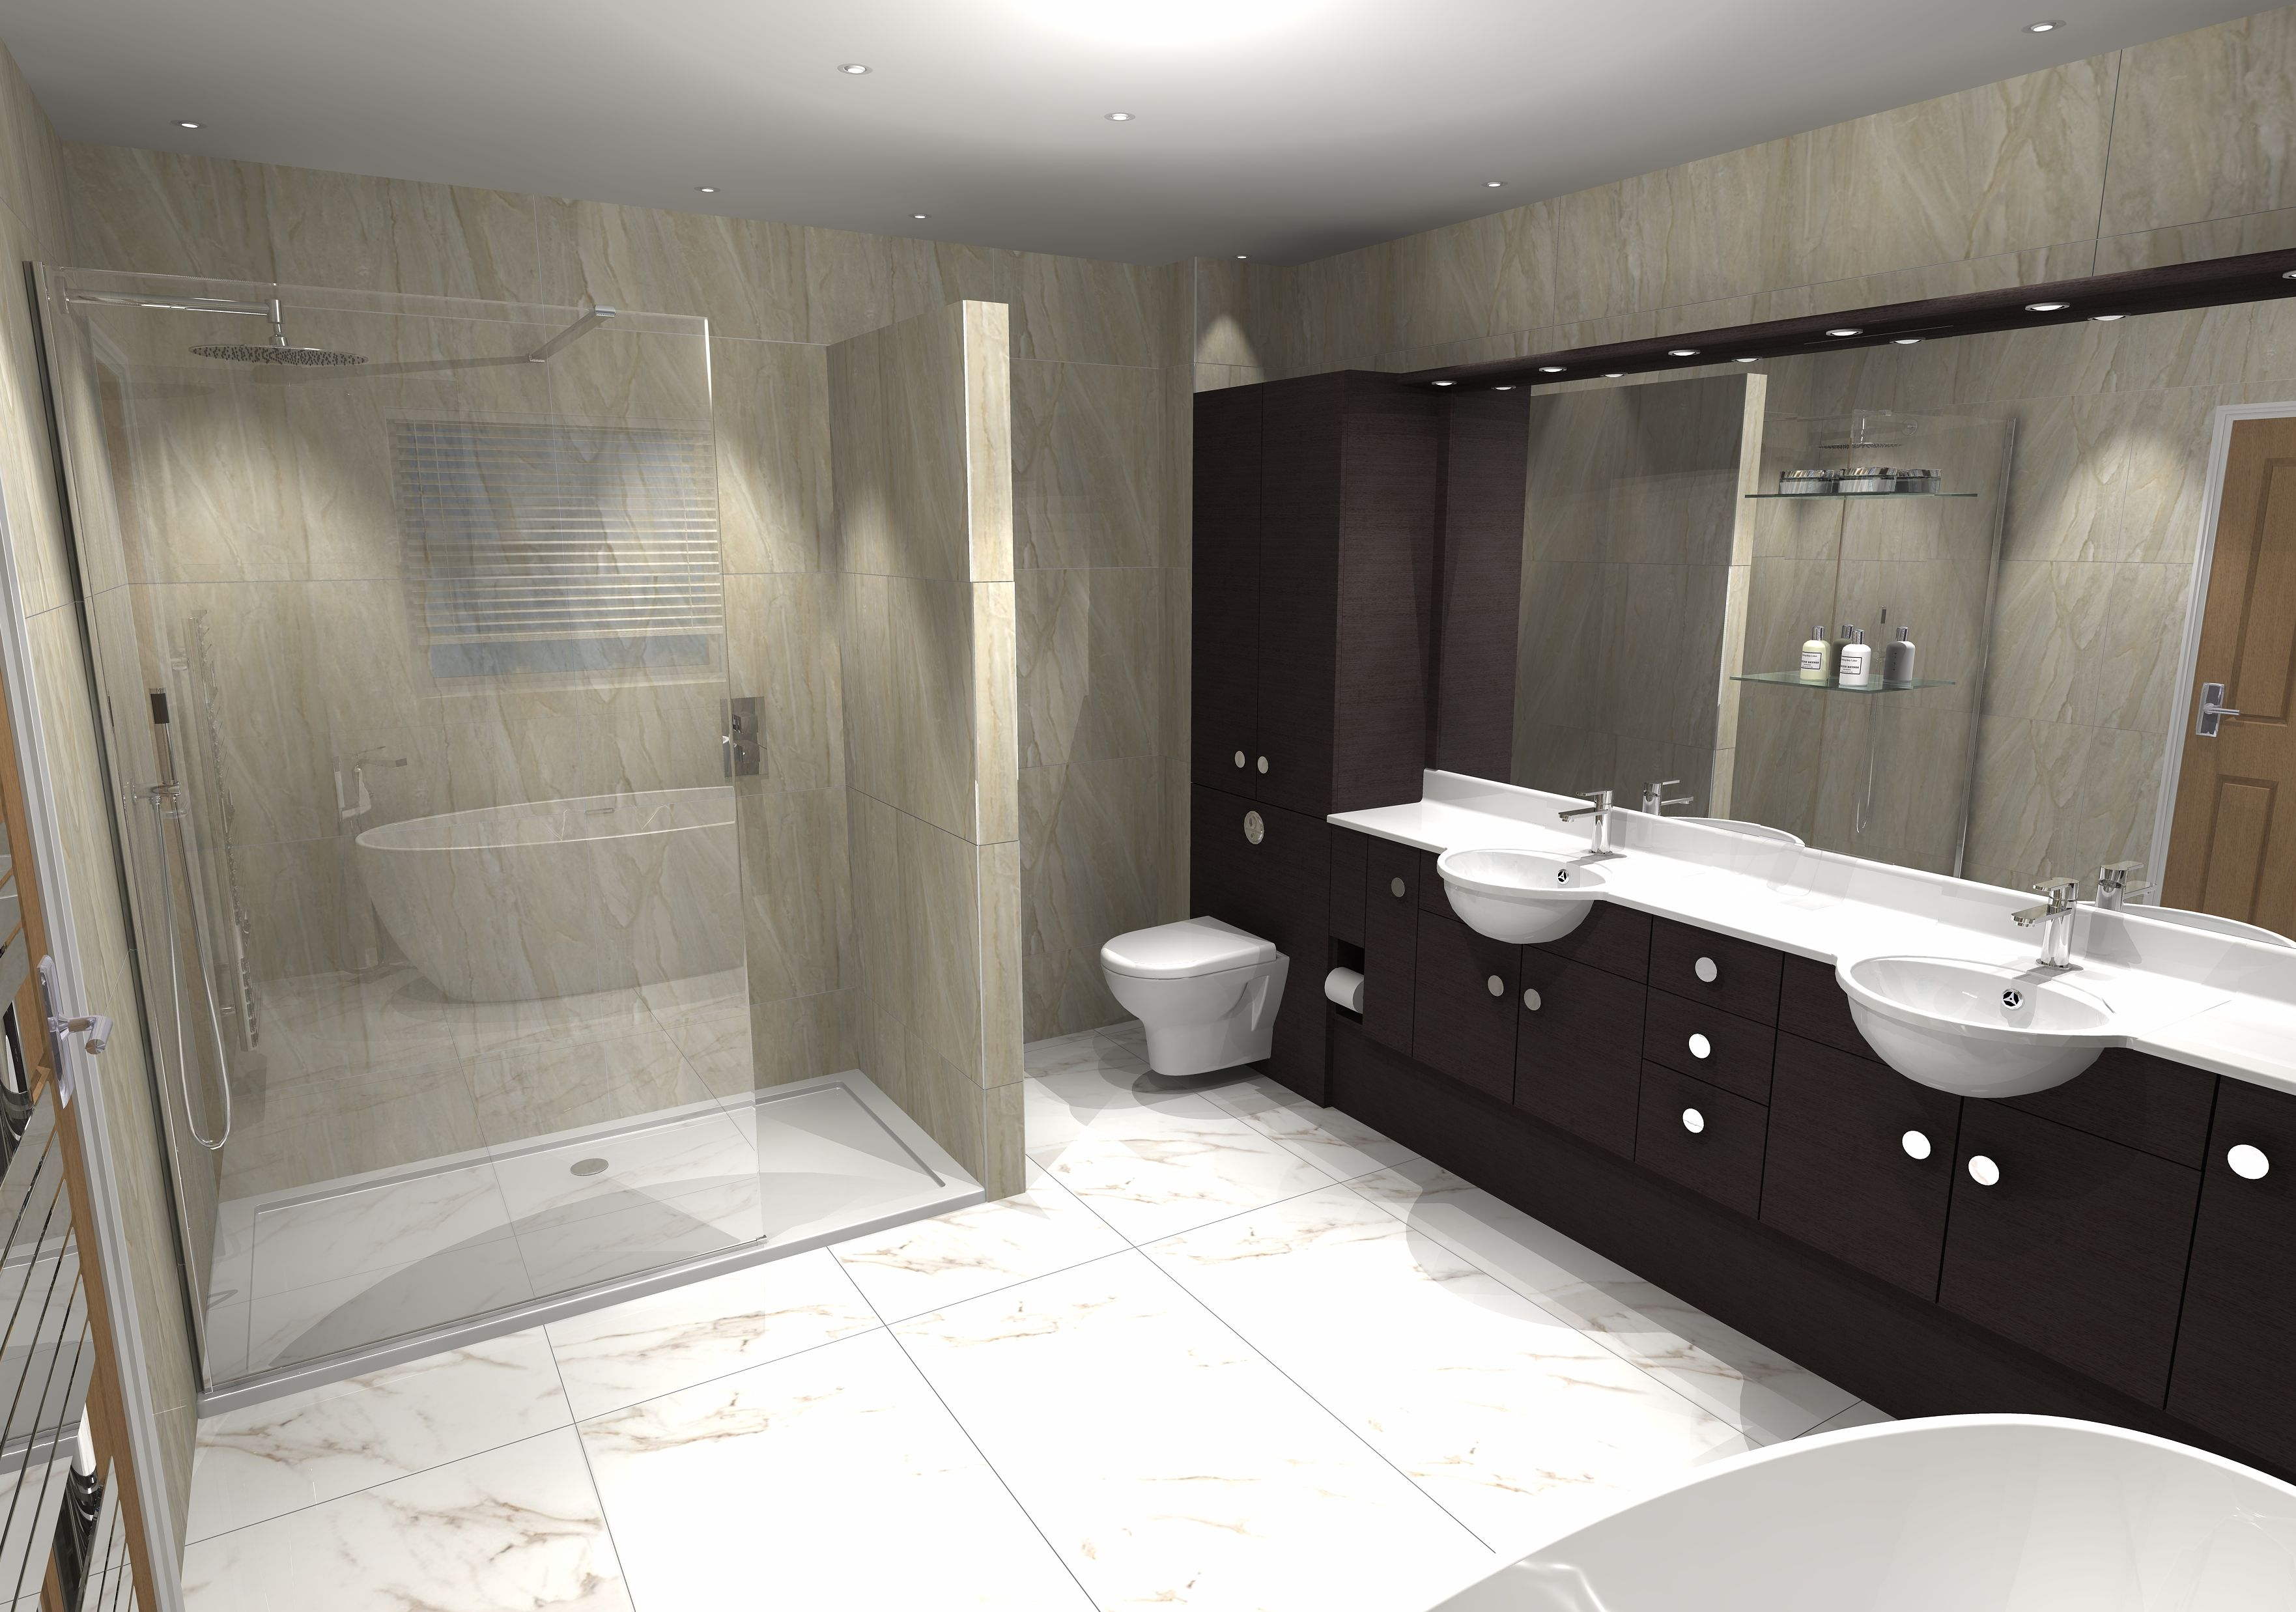 Ambiance Bain Bathroom Furniture & Walk In Shower Bathroom Design Stunning Virtual Bathroom Design Design Inspiration